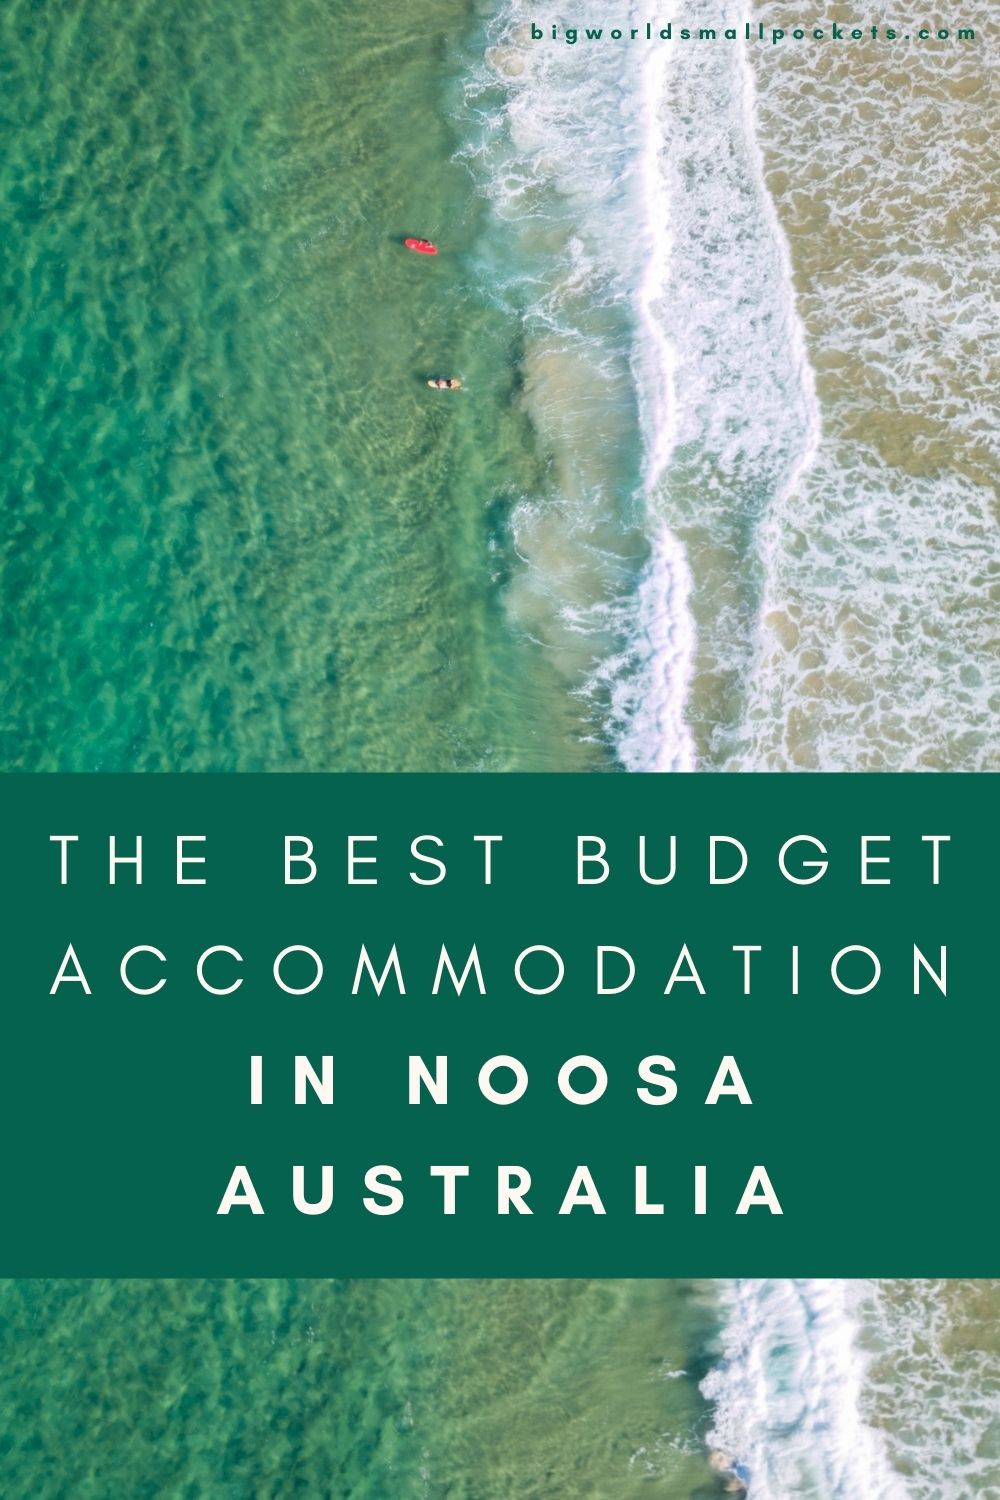 The Best Budget Accommodation in Noosa, Australia